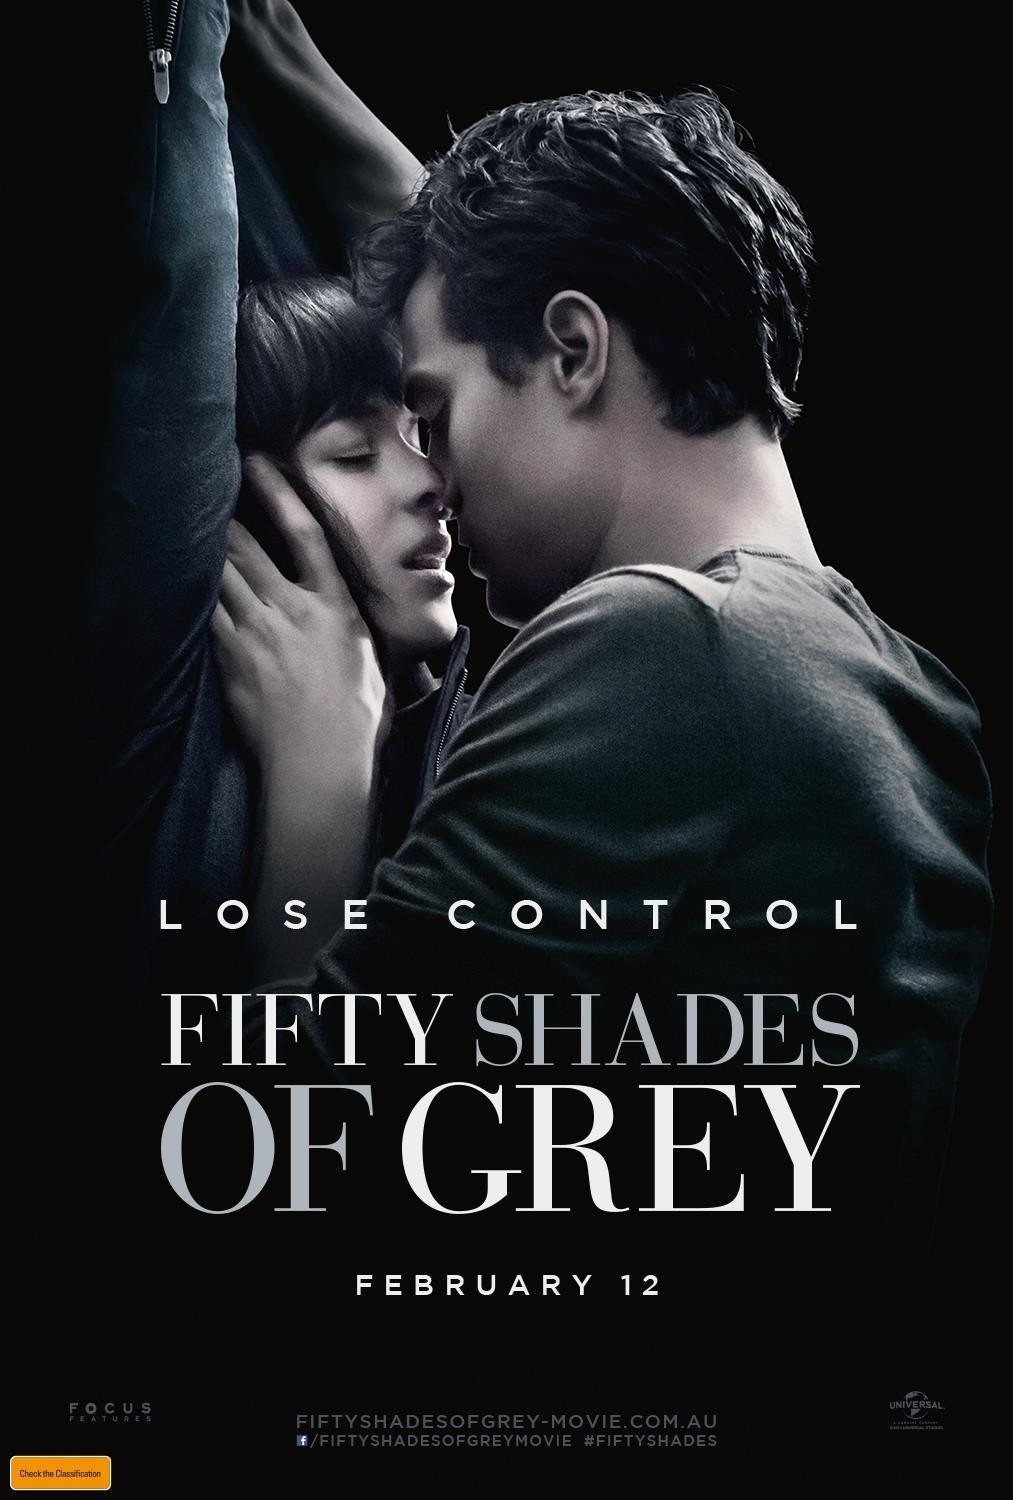 Reel Relationships Fifty Shades Of Grey An Invitation To Explore